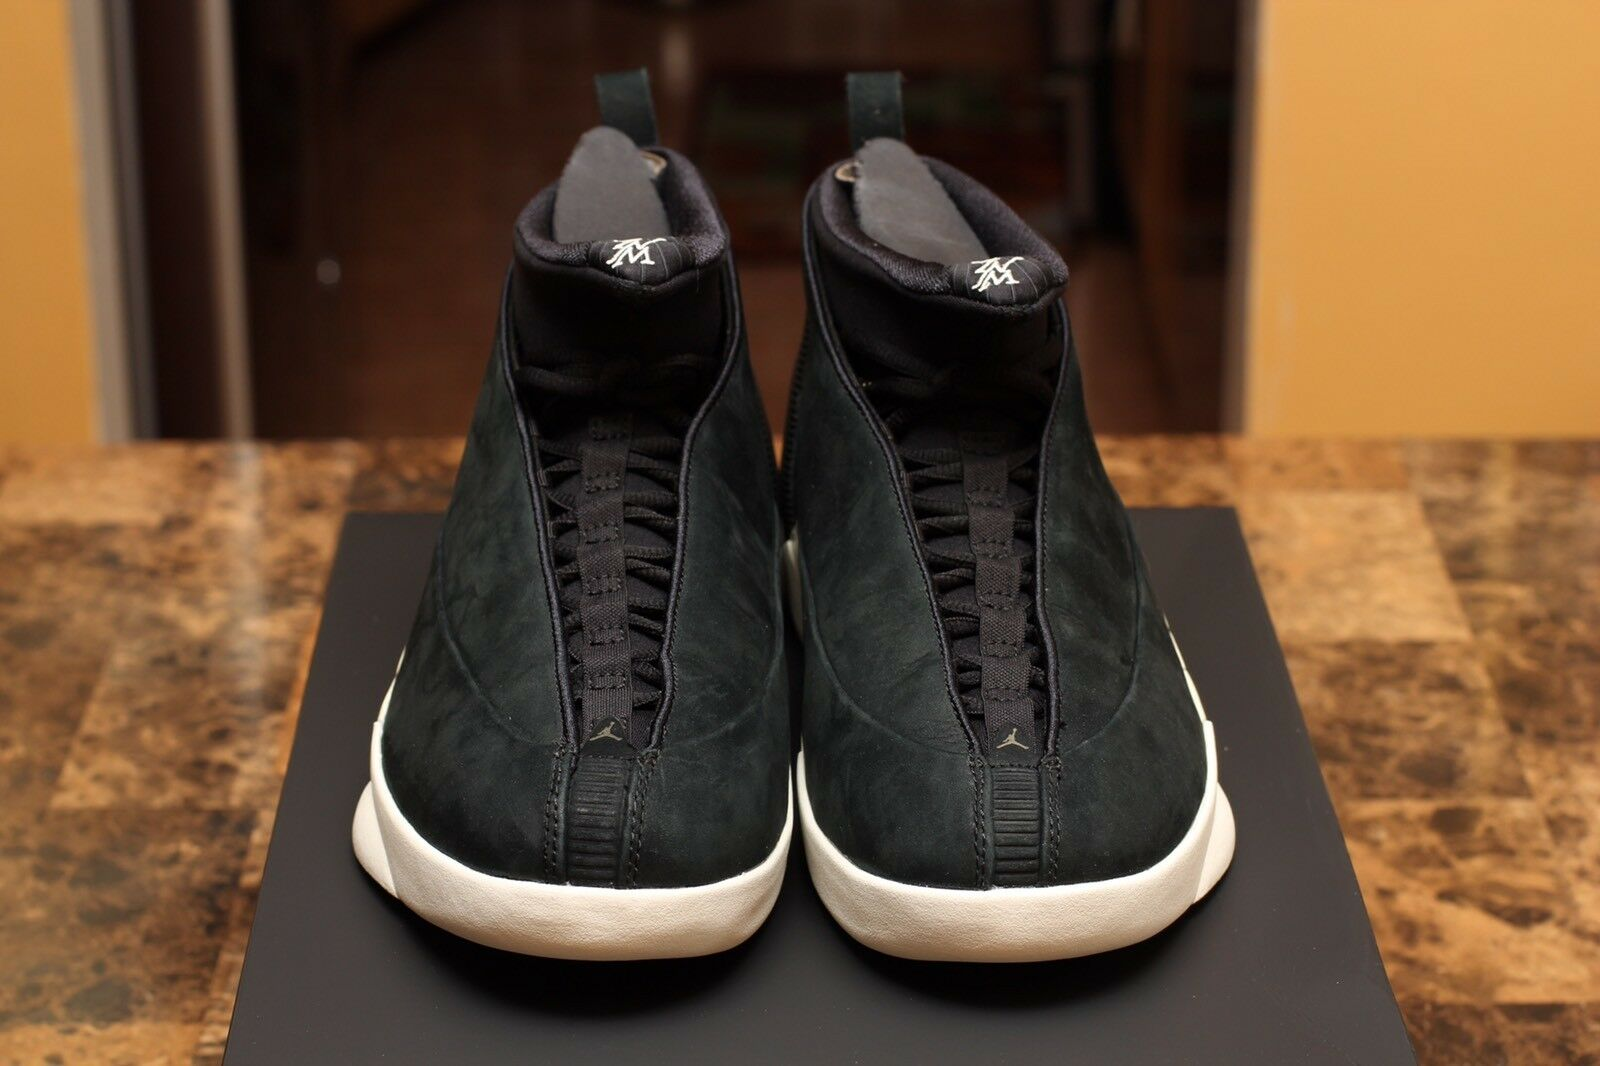 Nike ds air jordan 15 retro - psny größe 10,5 ds Nike authentische w / rec 1b78c2